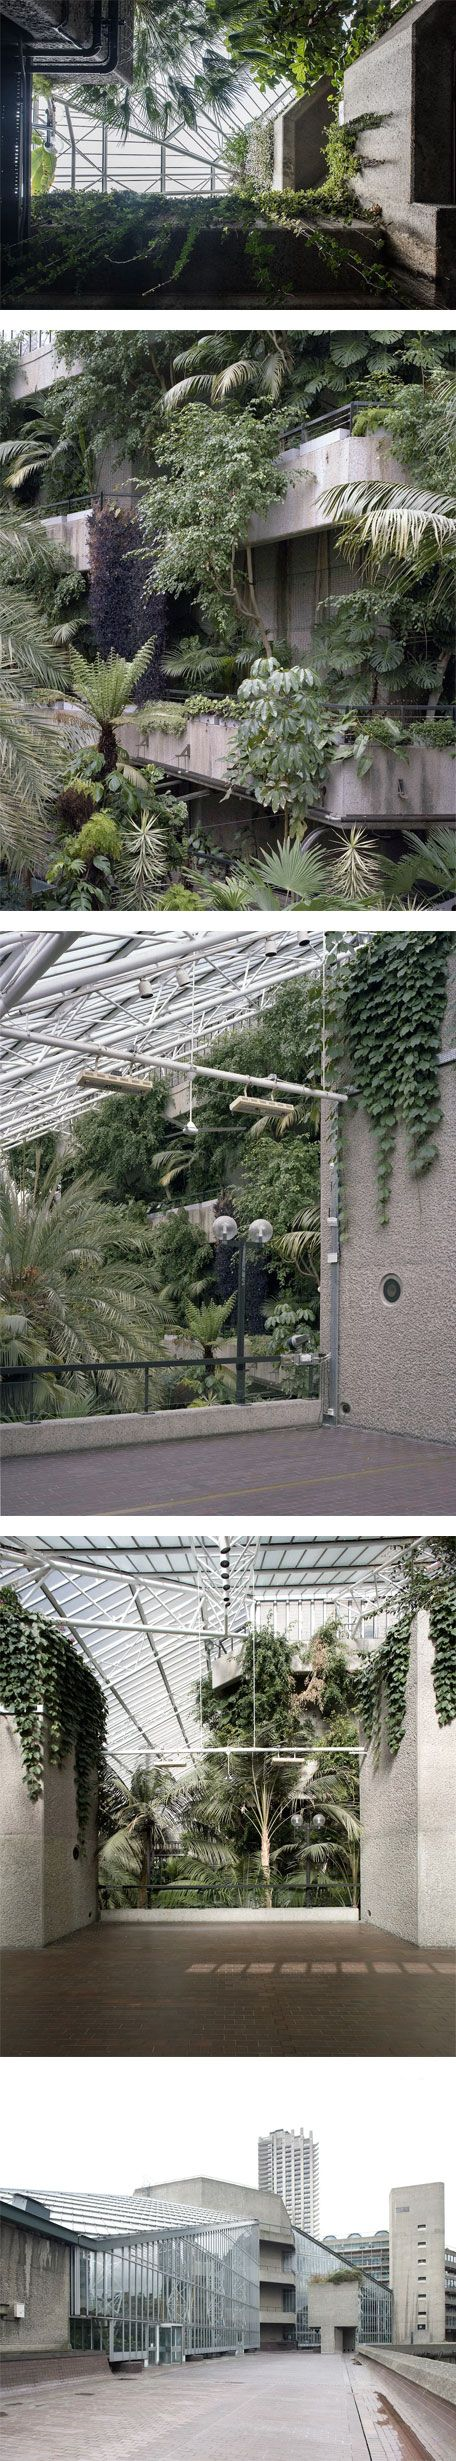 The Barbican Conservatory by Luke Hayes on Nuji.com #photography #barbican #london